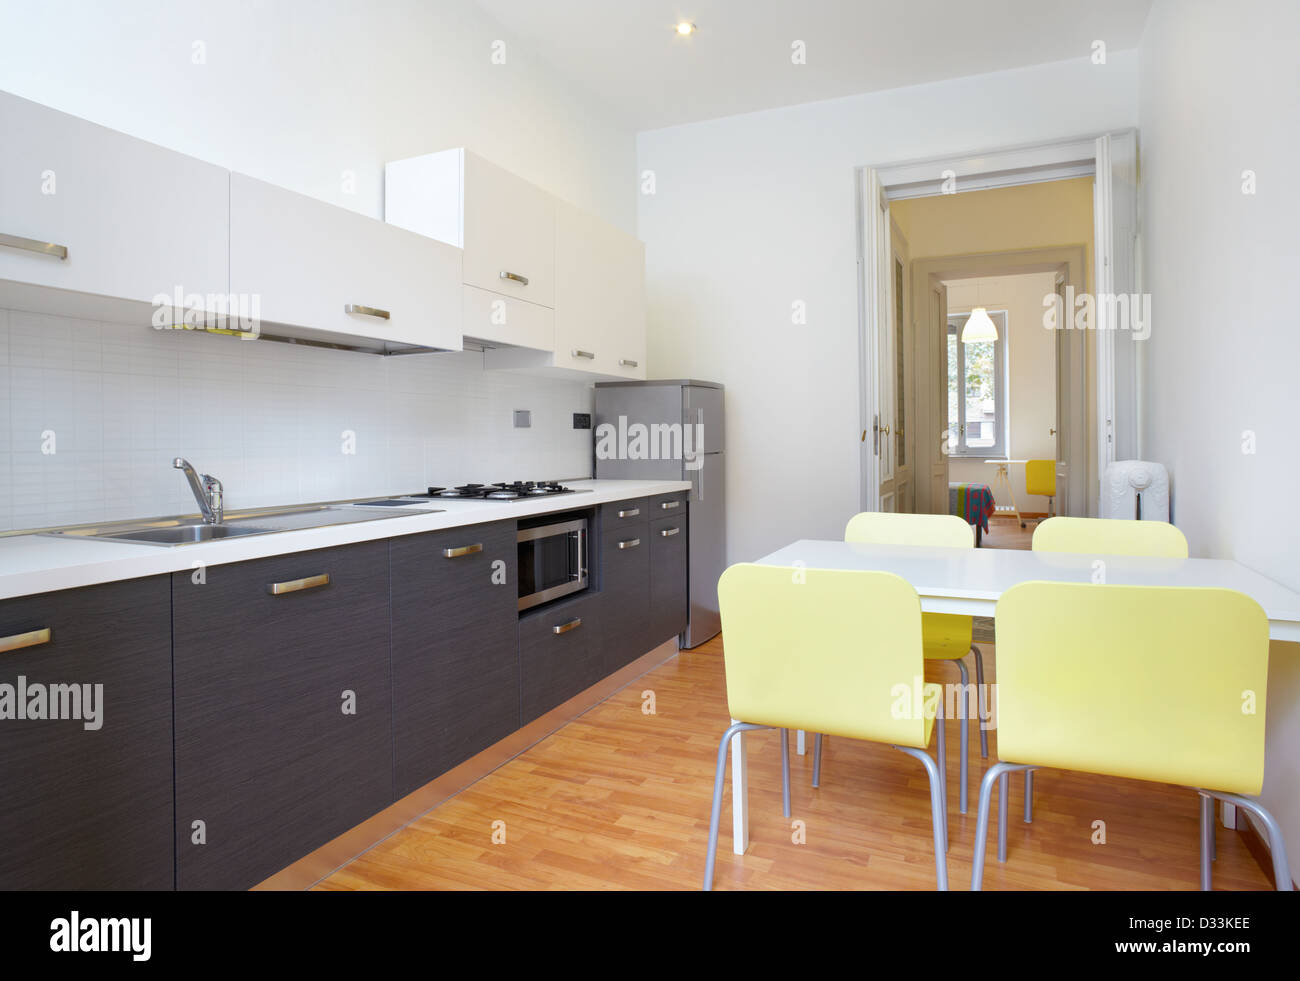 Kitchen in new modern apartment - Stock Image